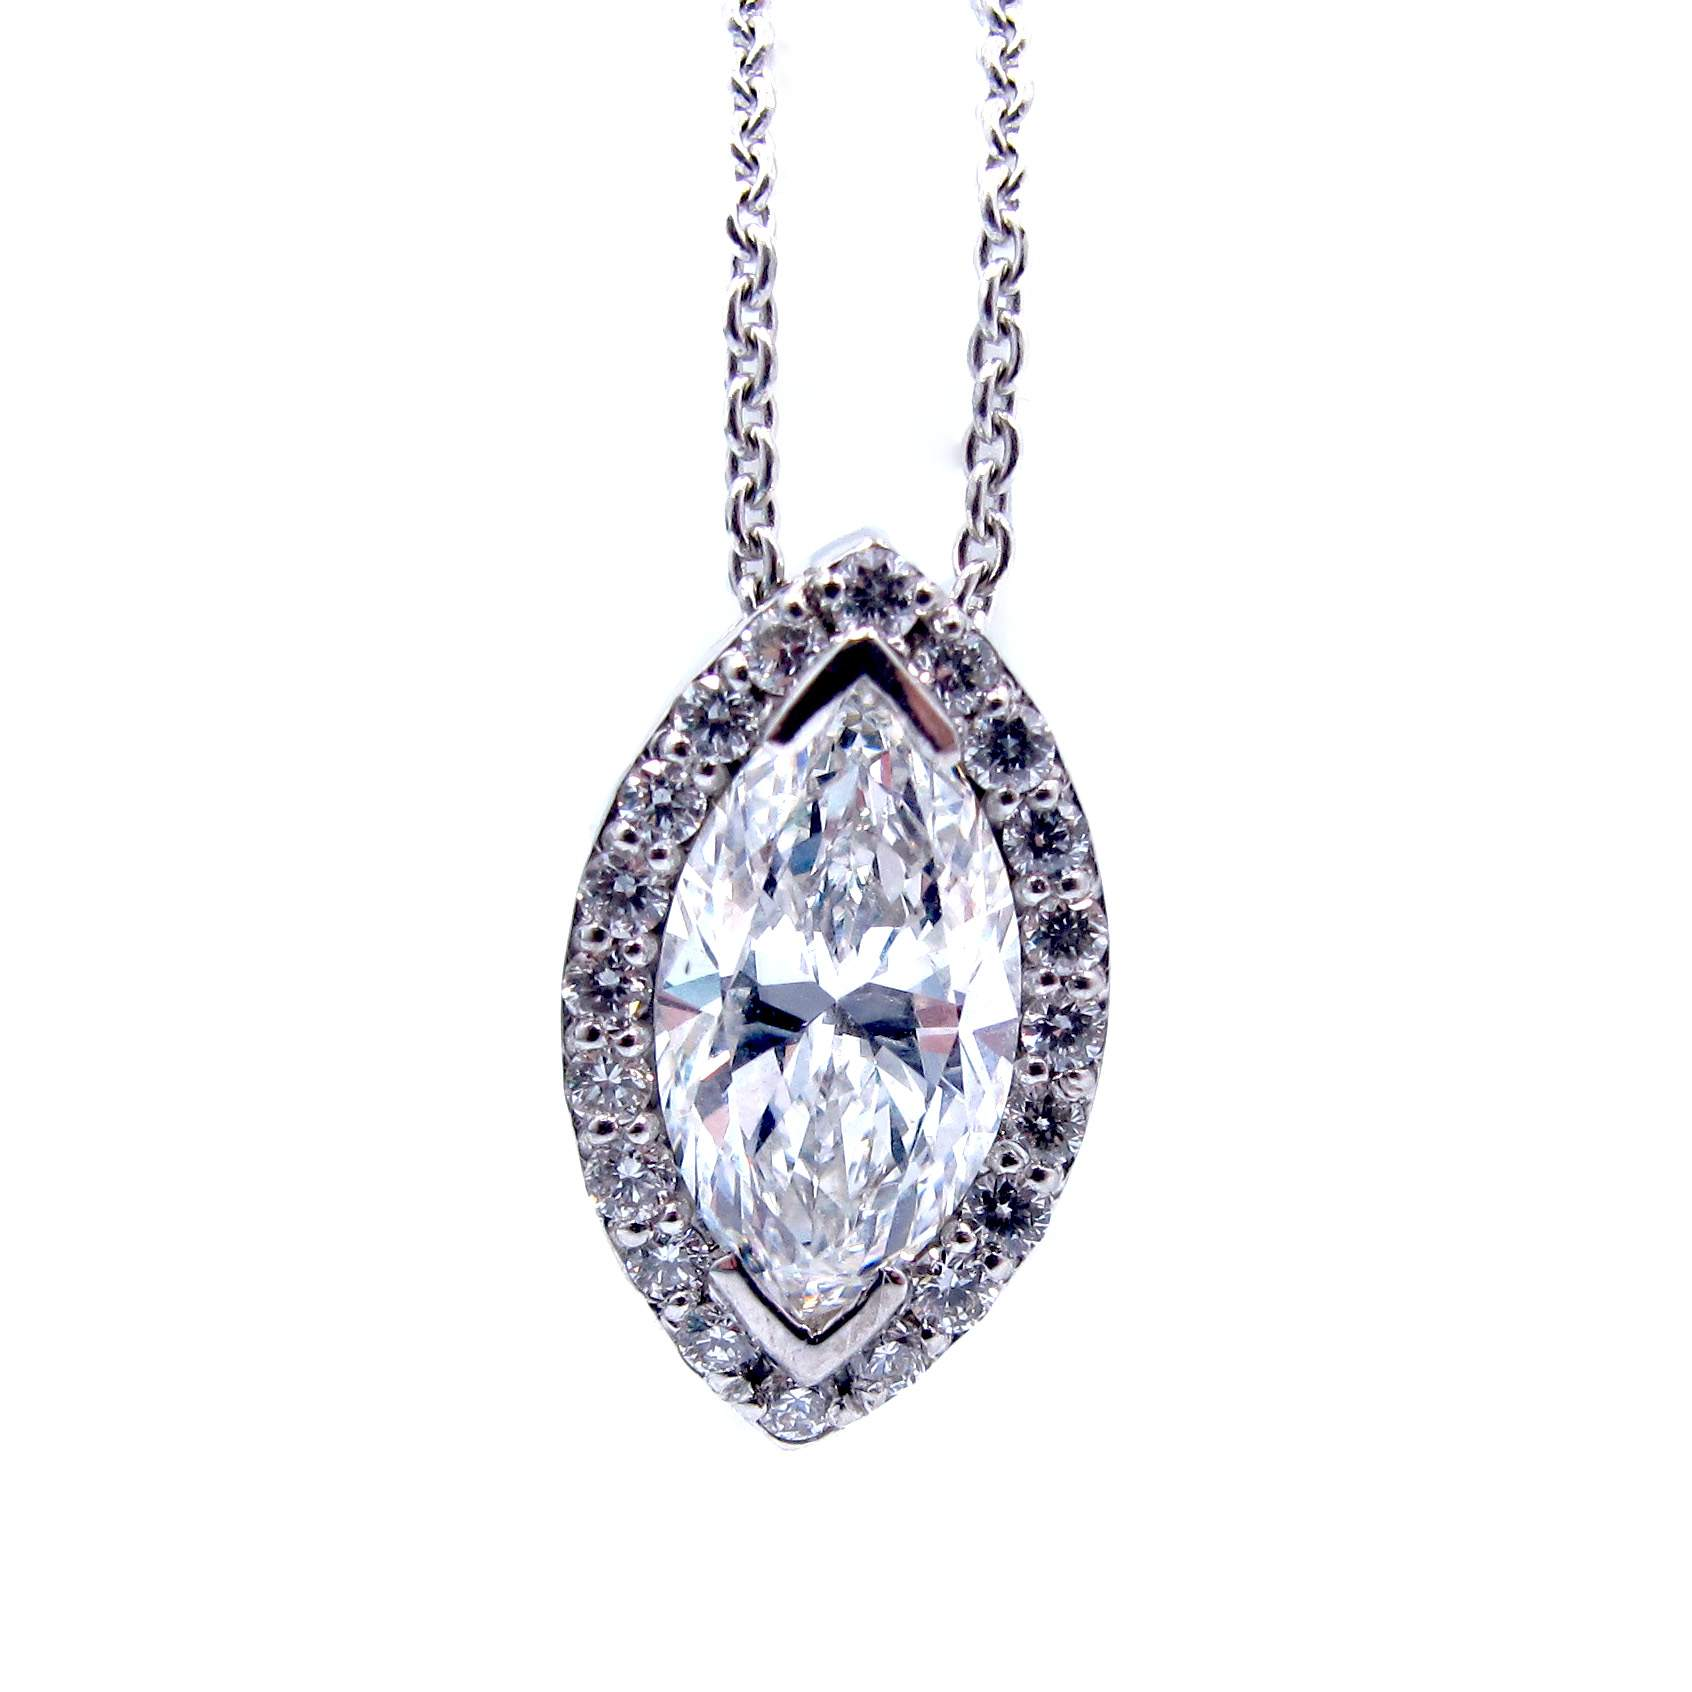 rsp white diamond lewis necklace buyewa ewa at gold online johnlewis com pdp john pendant main